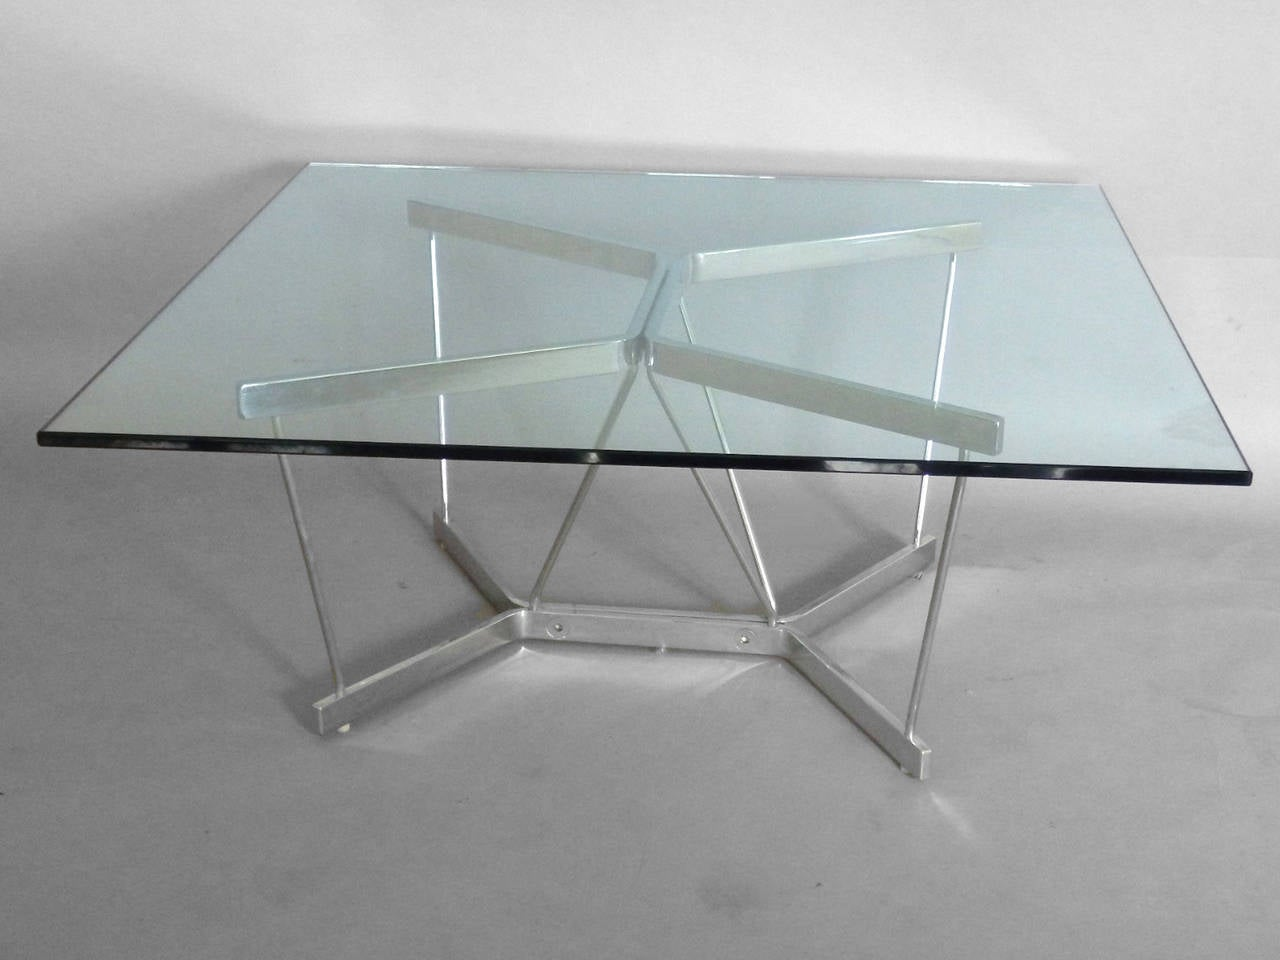 Seldom seen george nelson architectural chrome base for Architectural coffee table